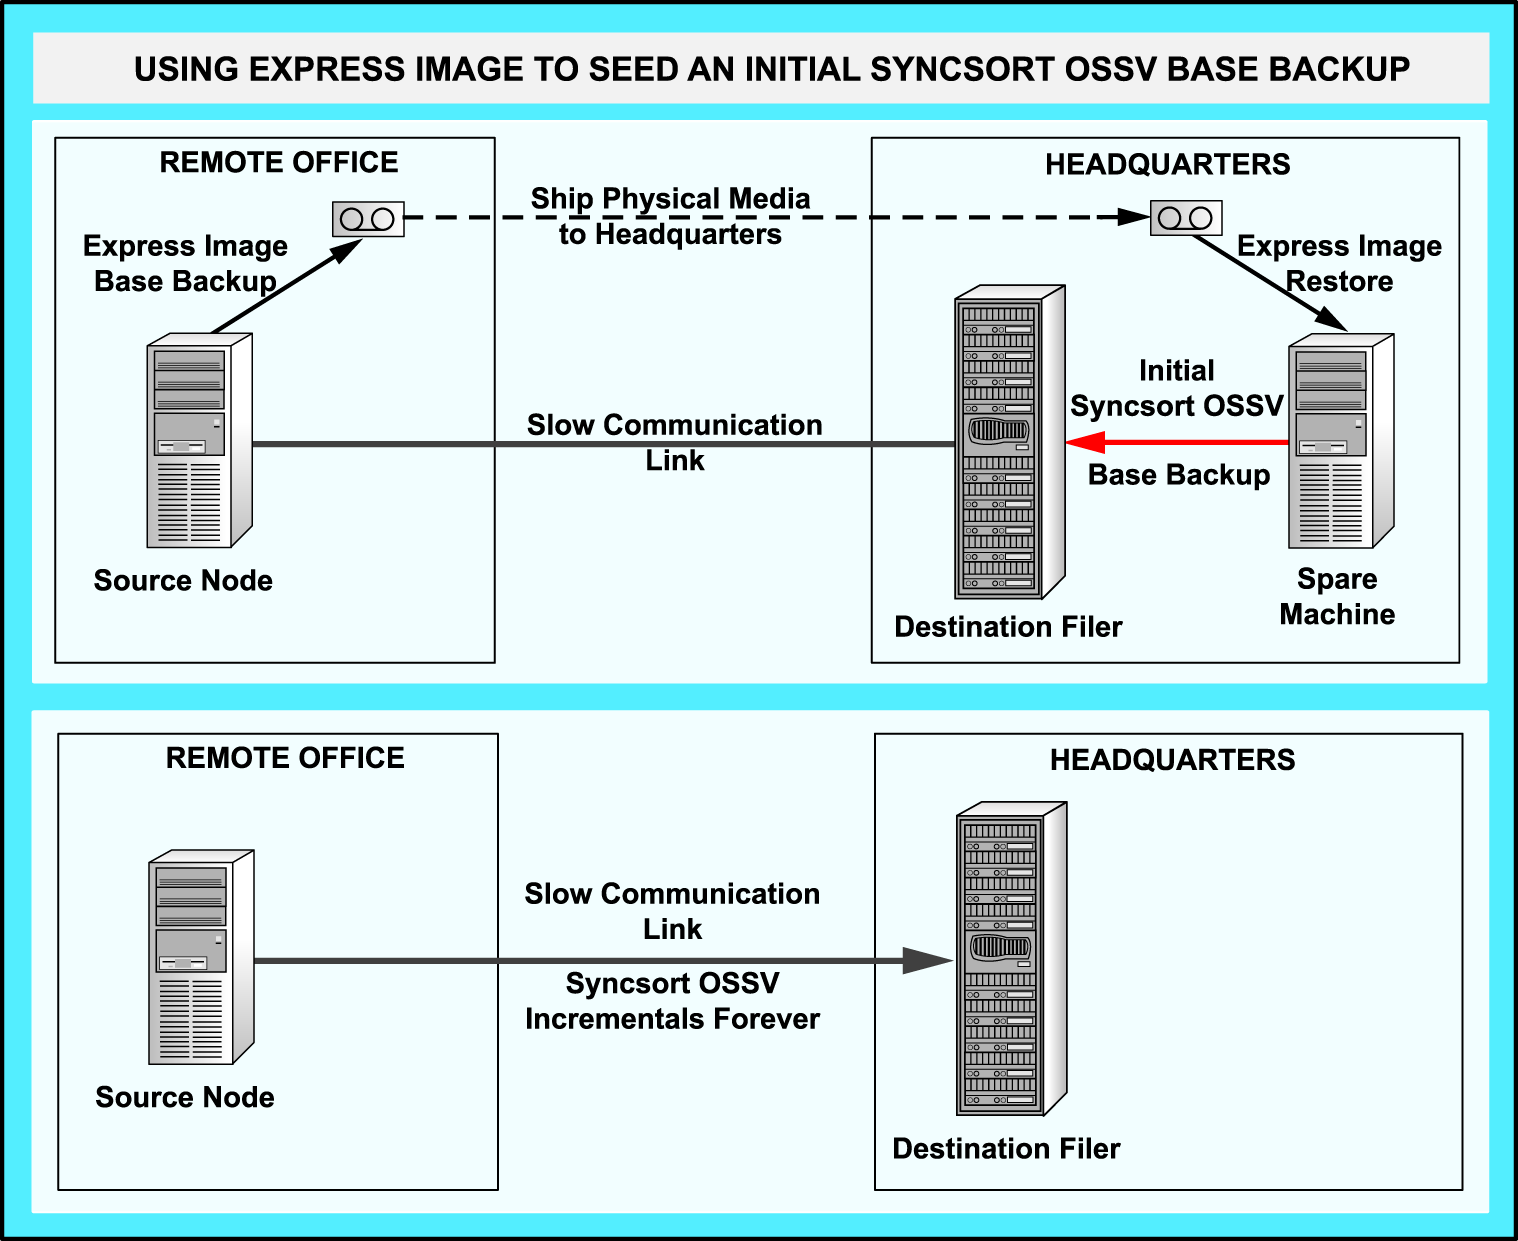 Seeding a Secondary Block Level Incremental backup is a feature of the Syncsort/NetApp remote site solution that assures that after the initial base backup of a remote node, all future incremental